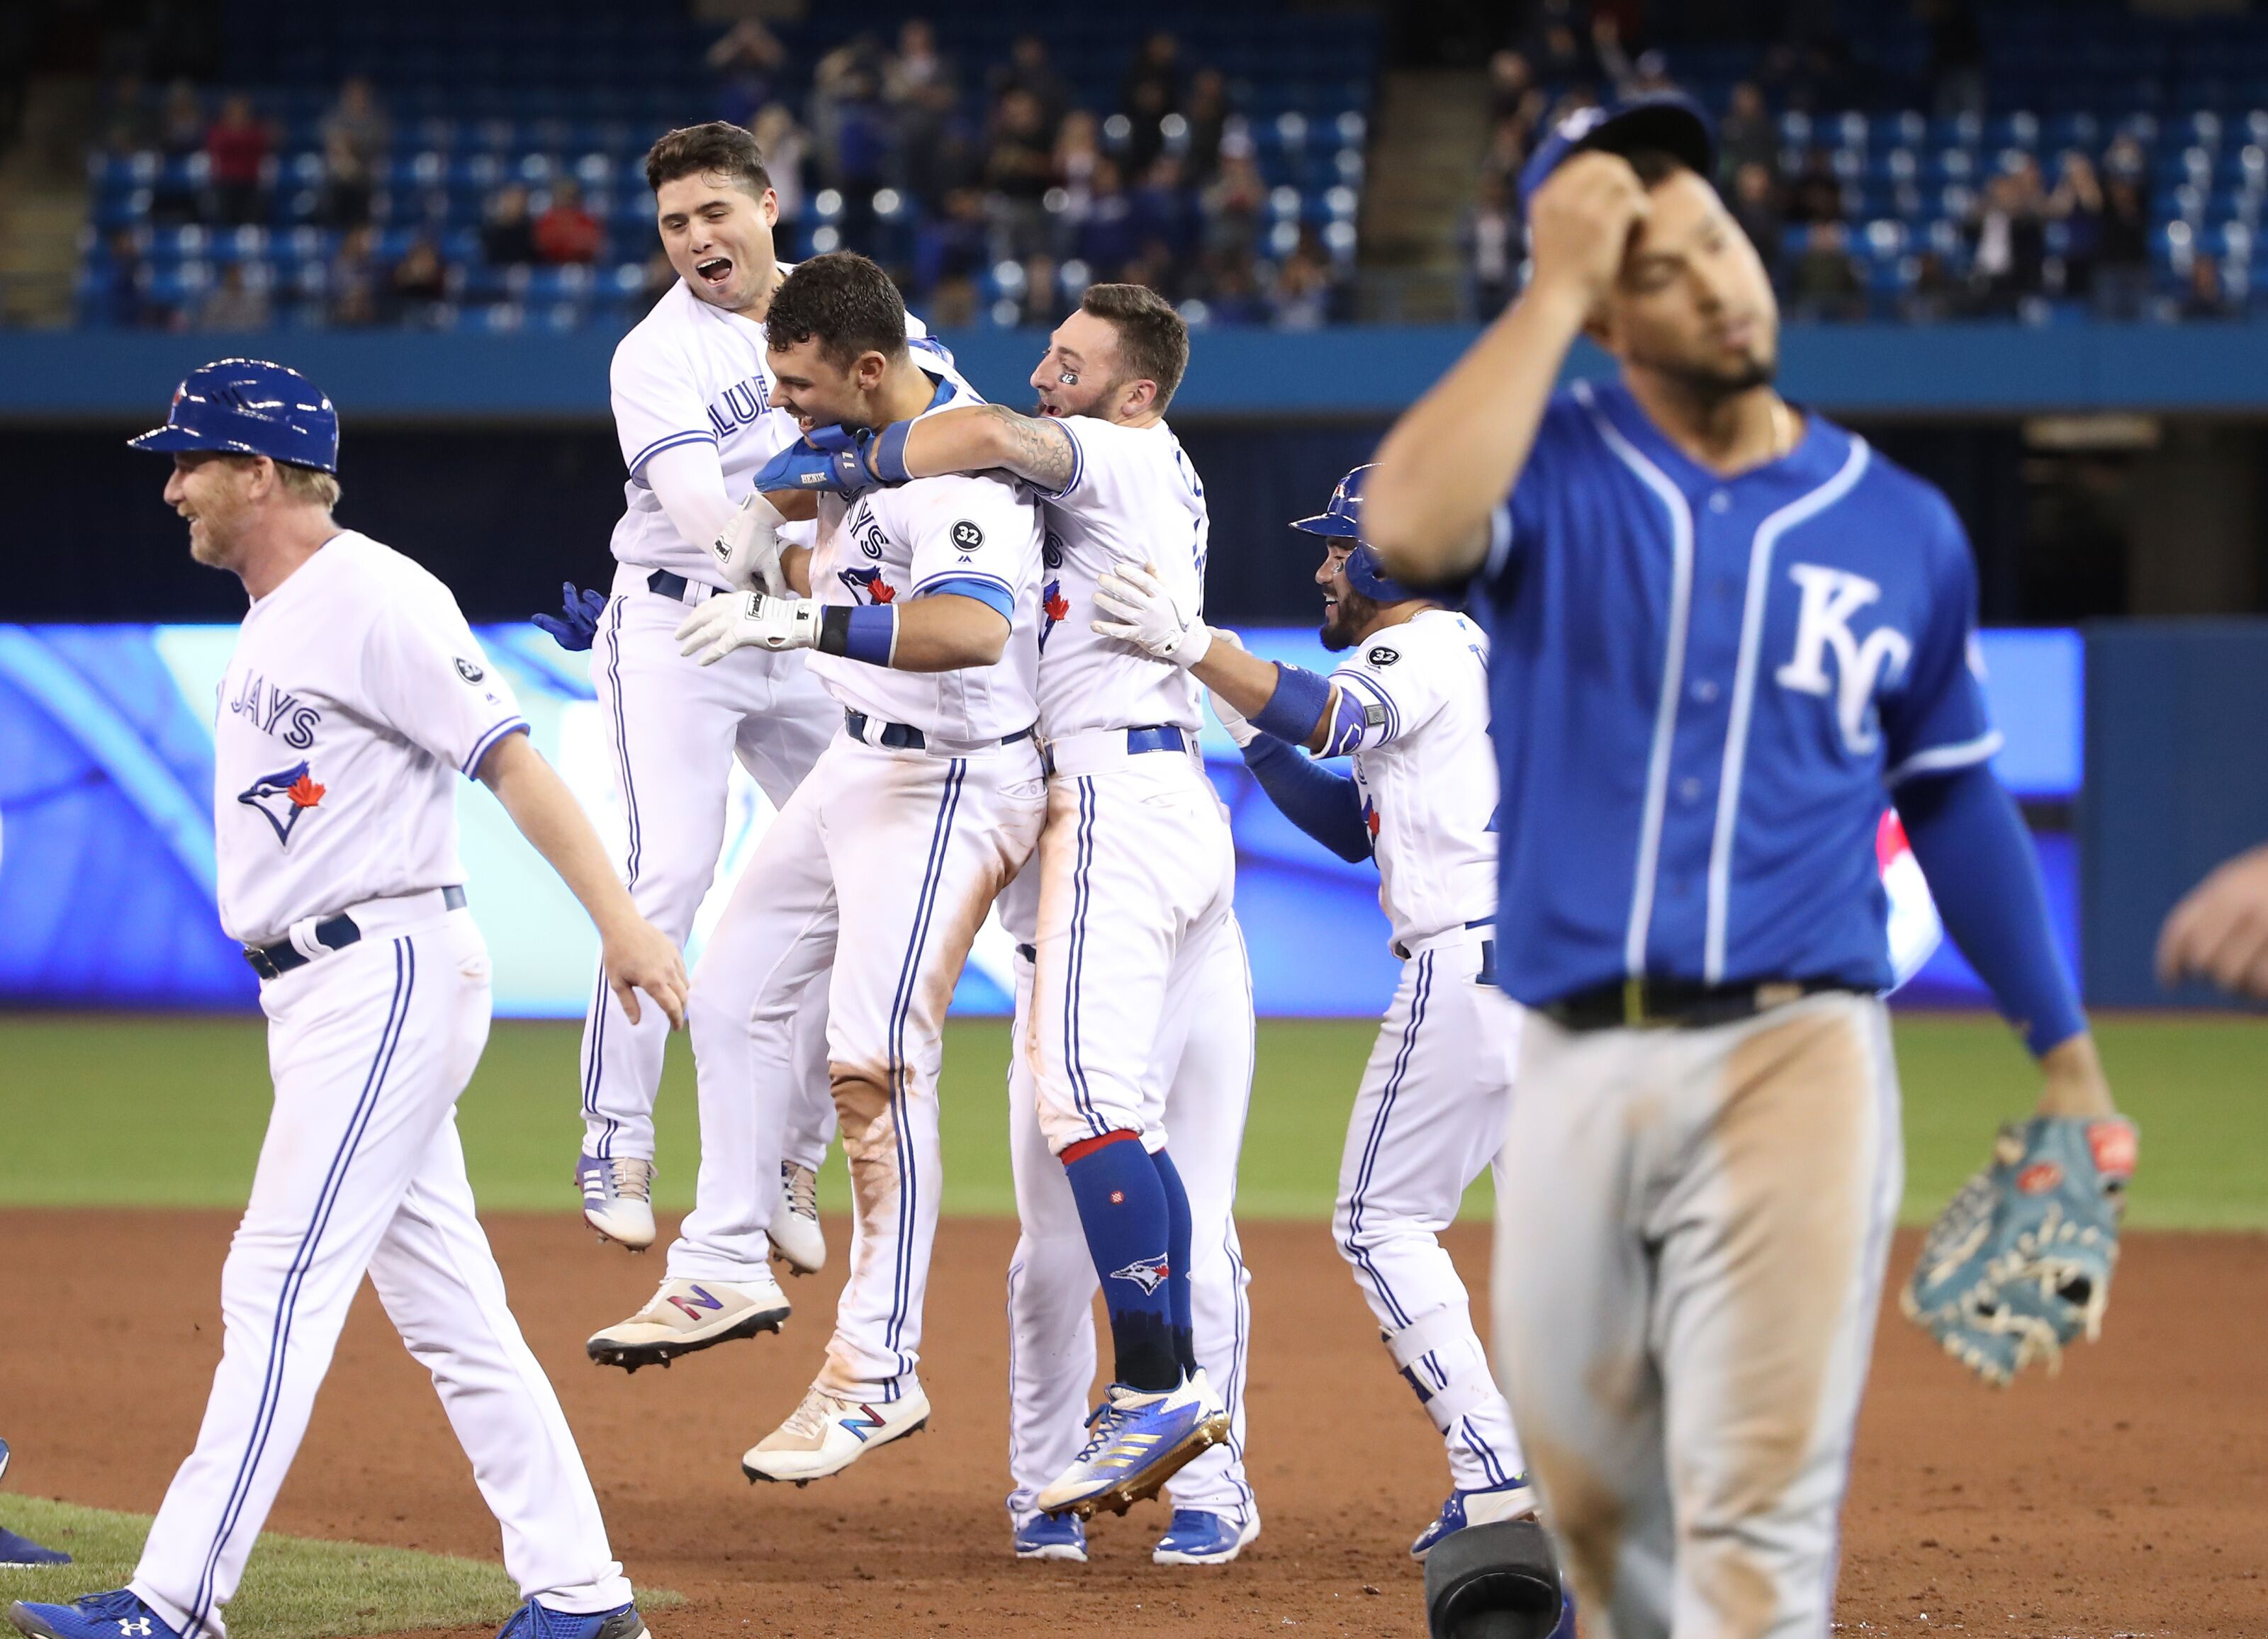 947944808-kansas-city-royals-v-toronto-blue-jays.jpg